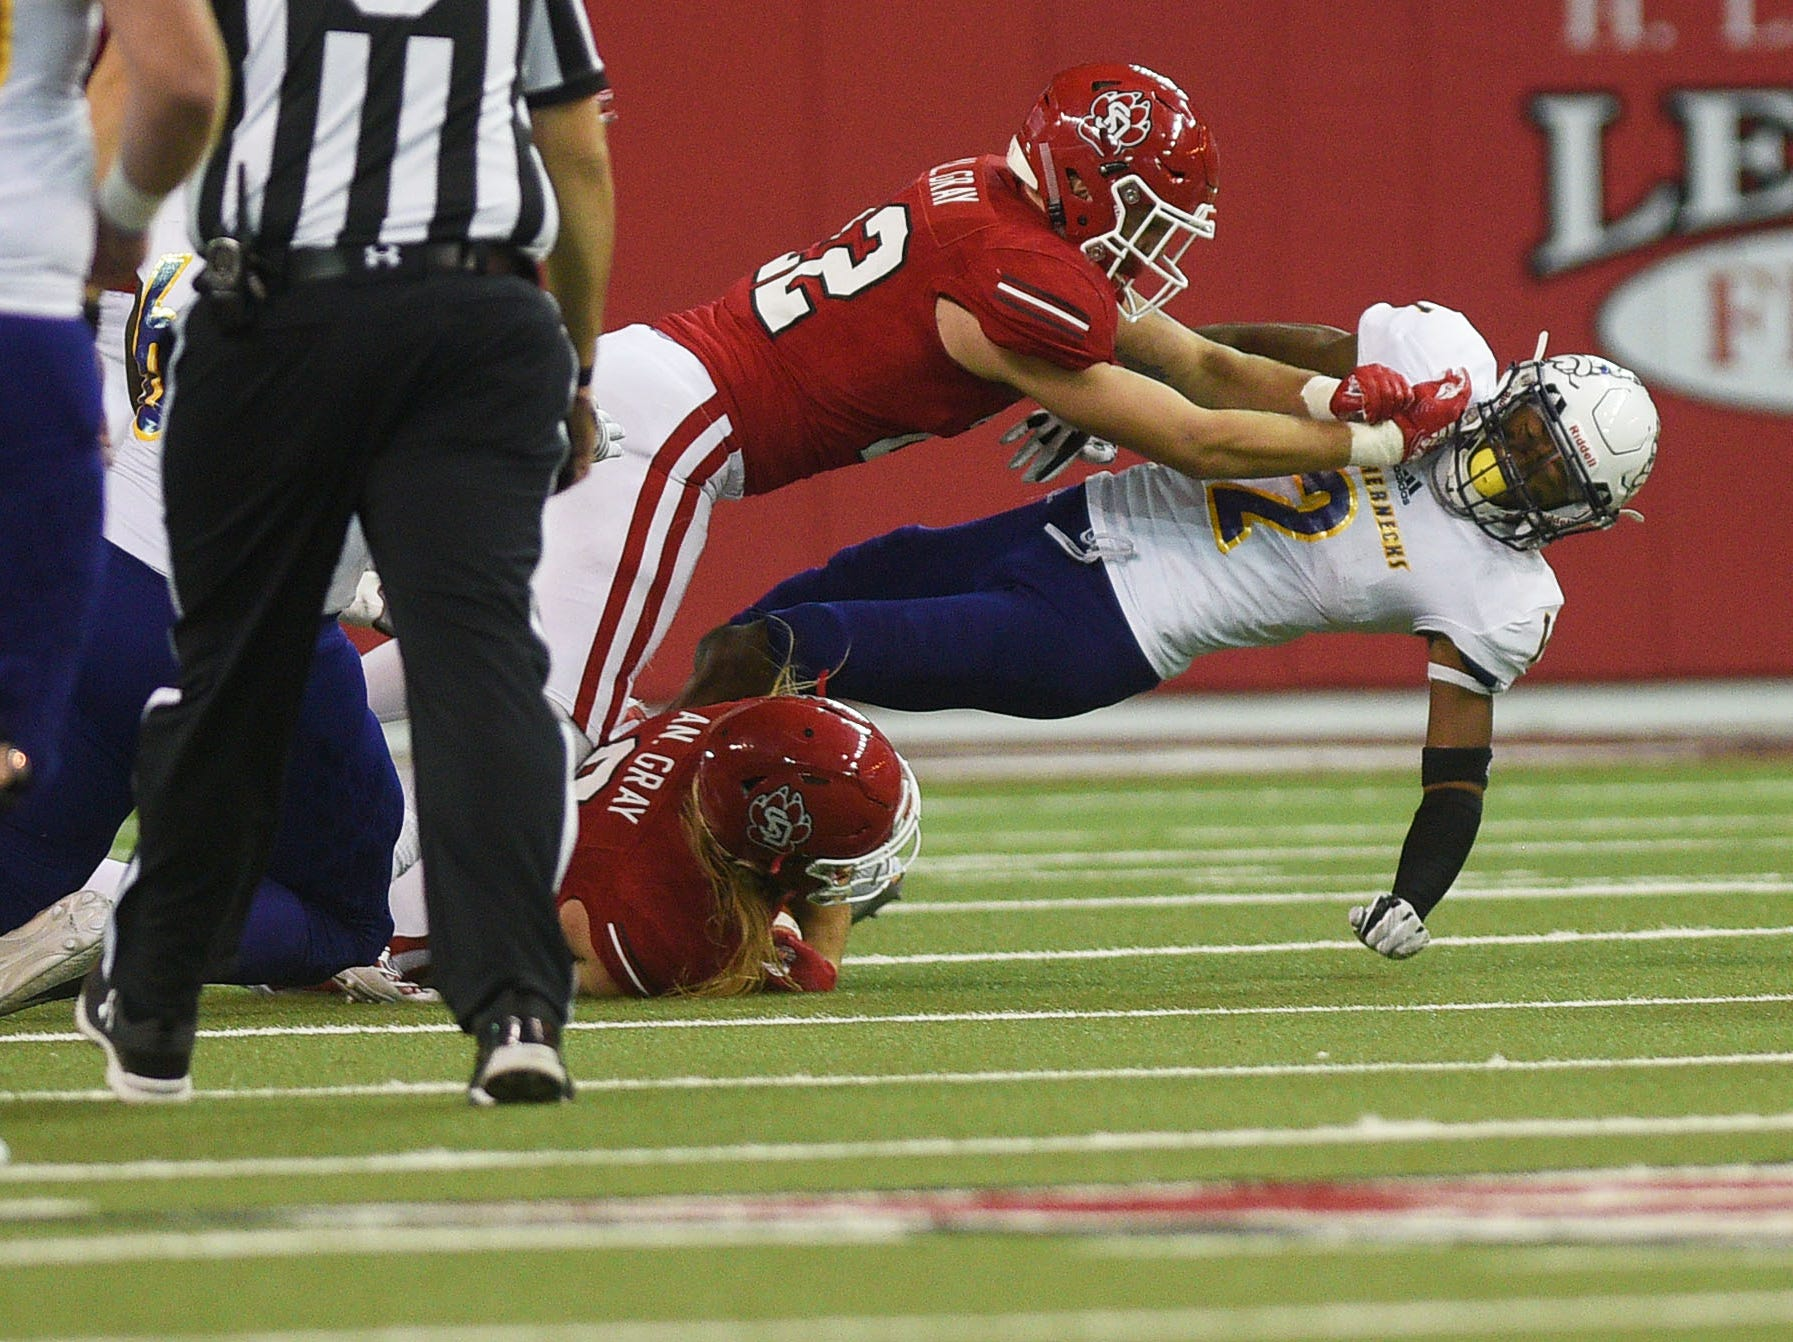 USD's Alex Gray tackles Western Illinois' IsaiahLeSure during the game Saturday, Nov. 10, at the DakotaDome in Vermillion.